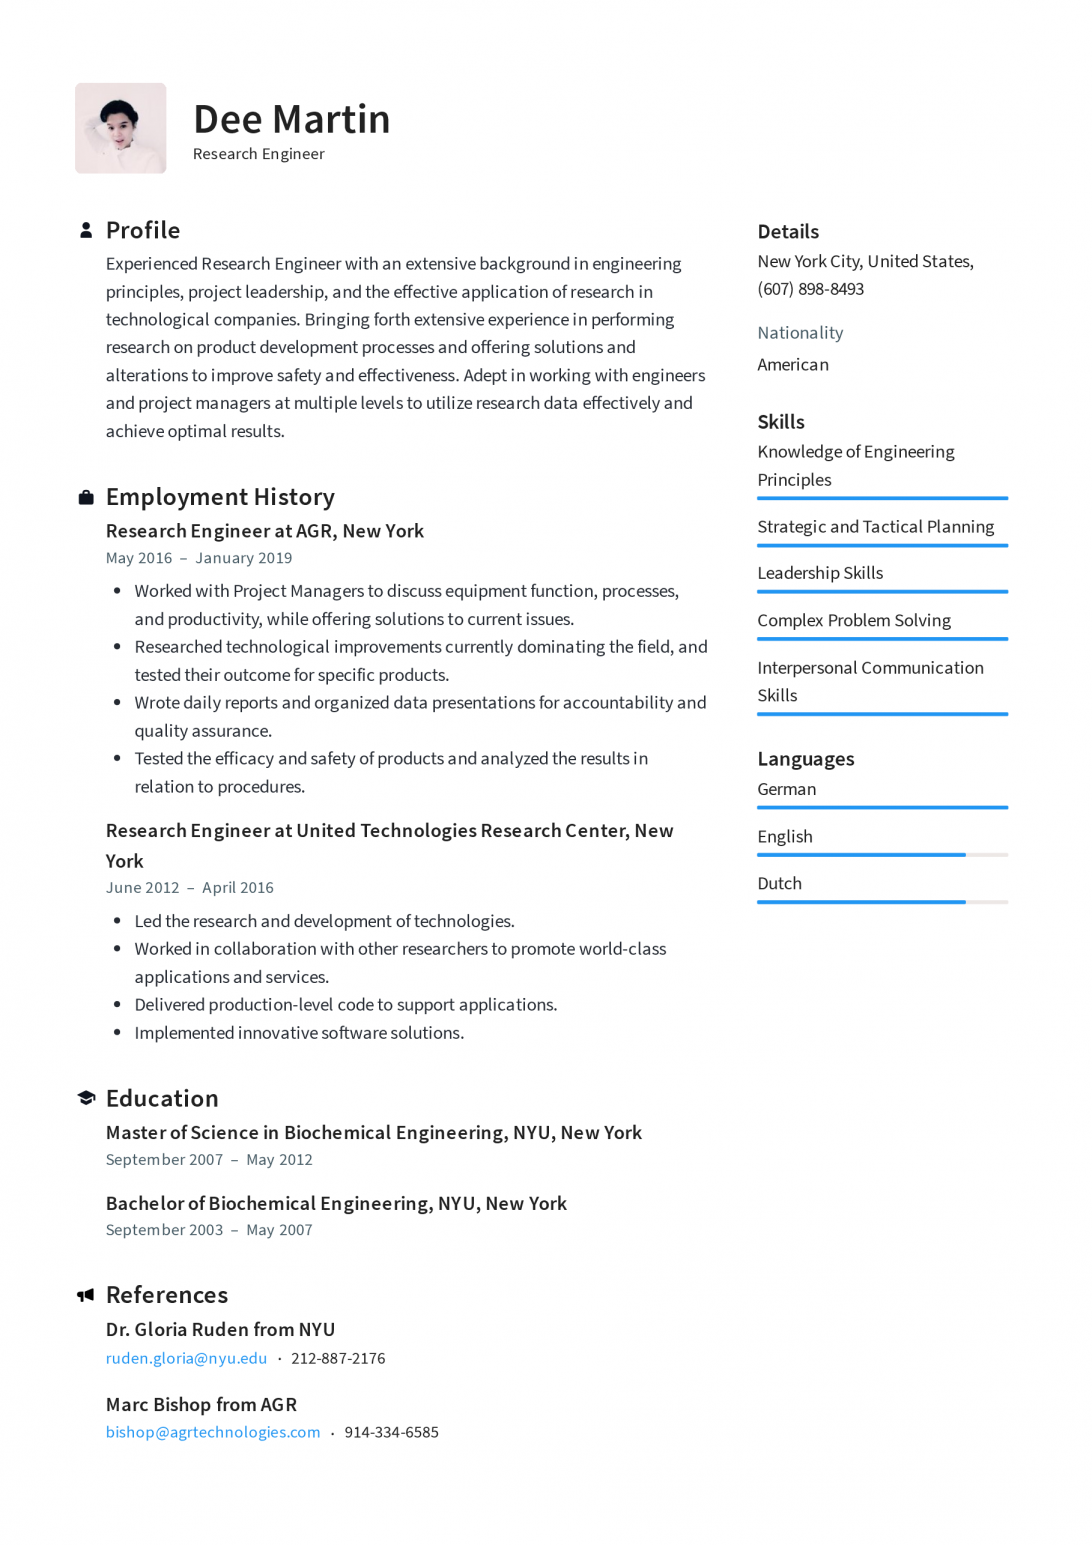 Professional Resume Templates Word Free Download in 2020